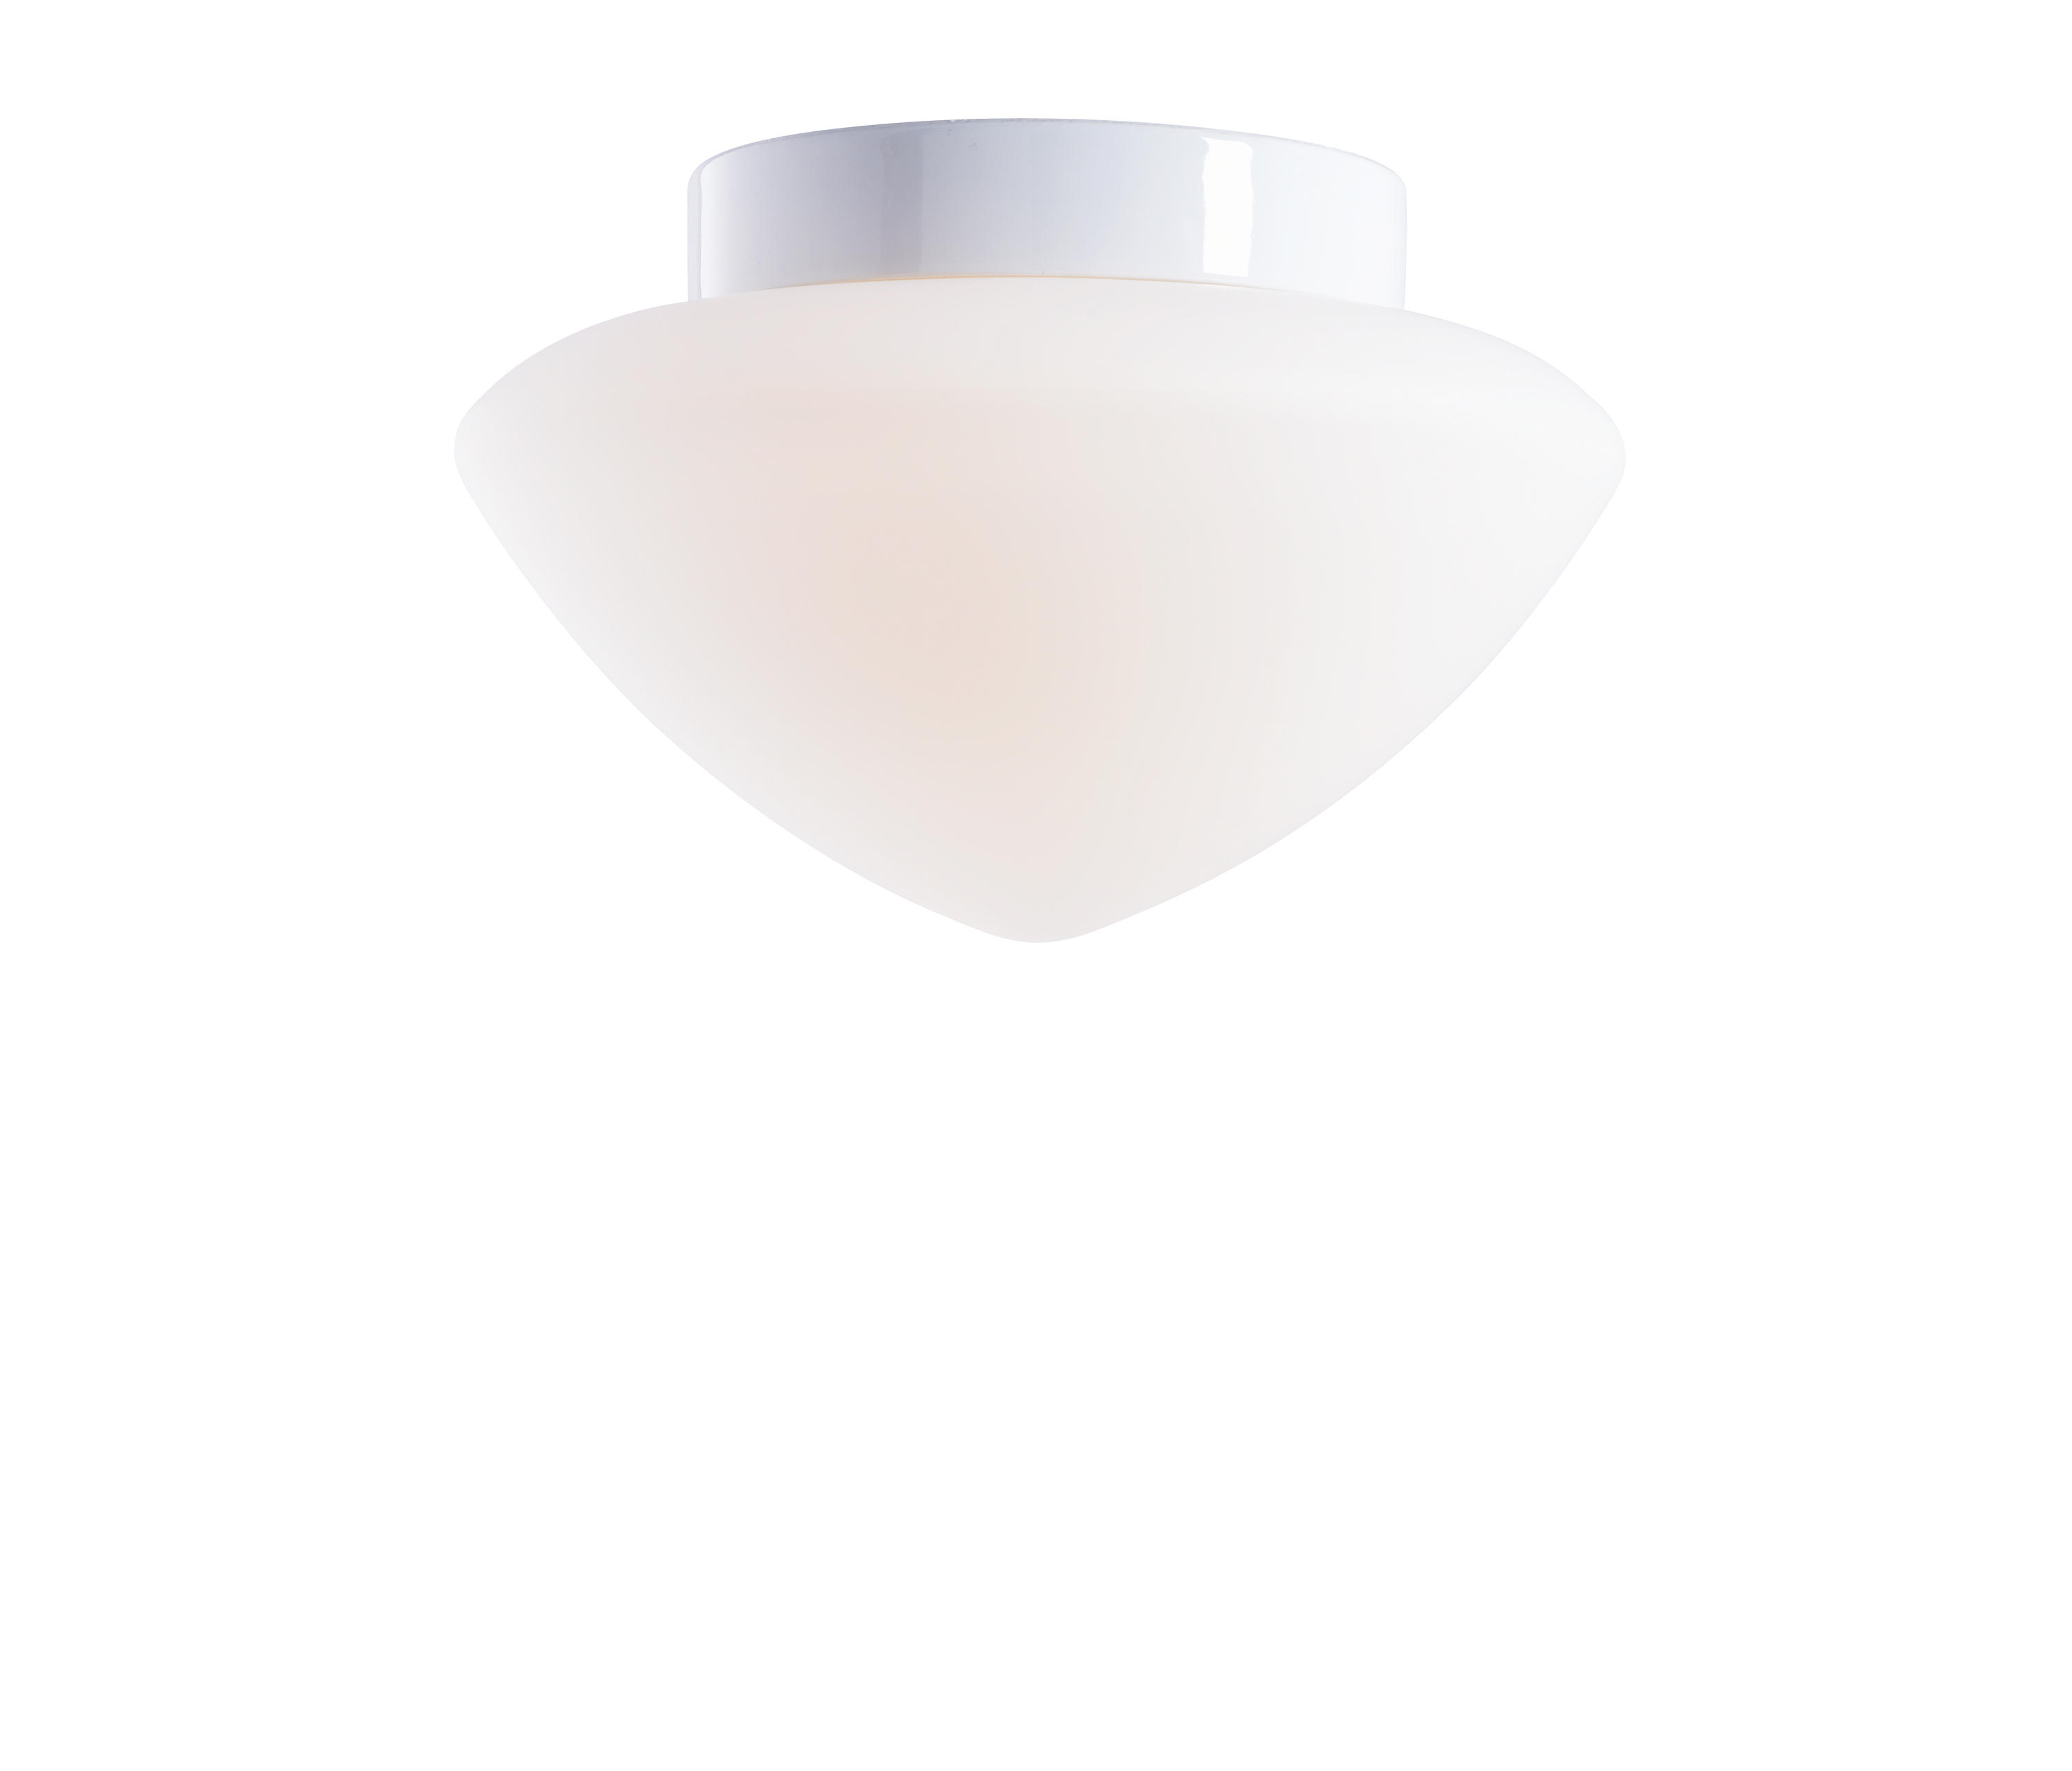 CONTRAST EDENRYD LED 08040 800 10 General Lighting From If Electric Arch